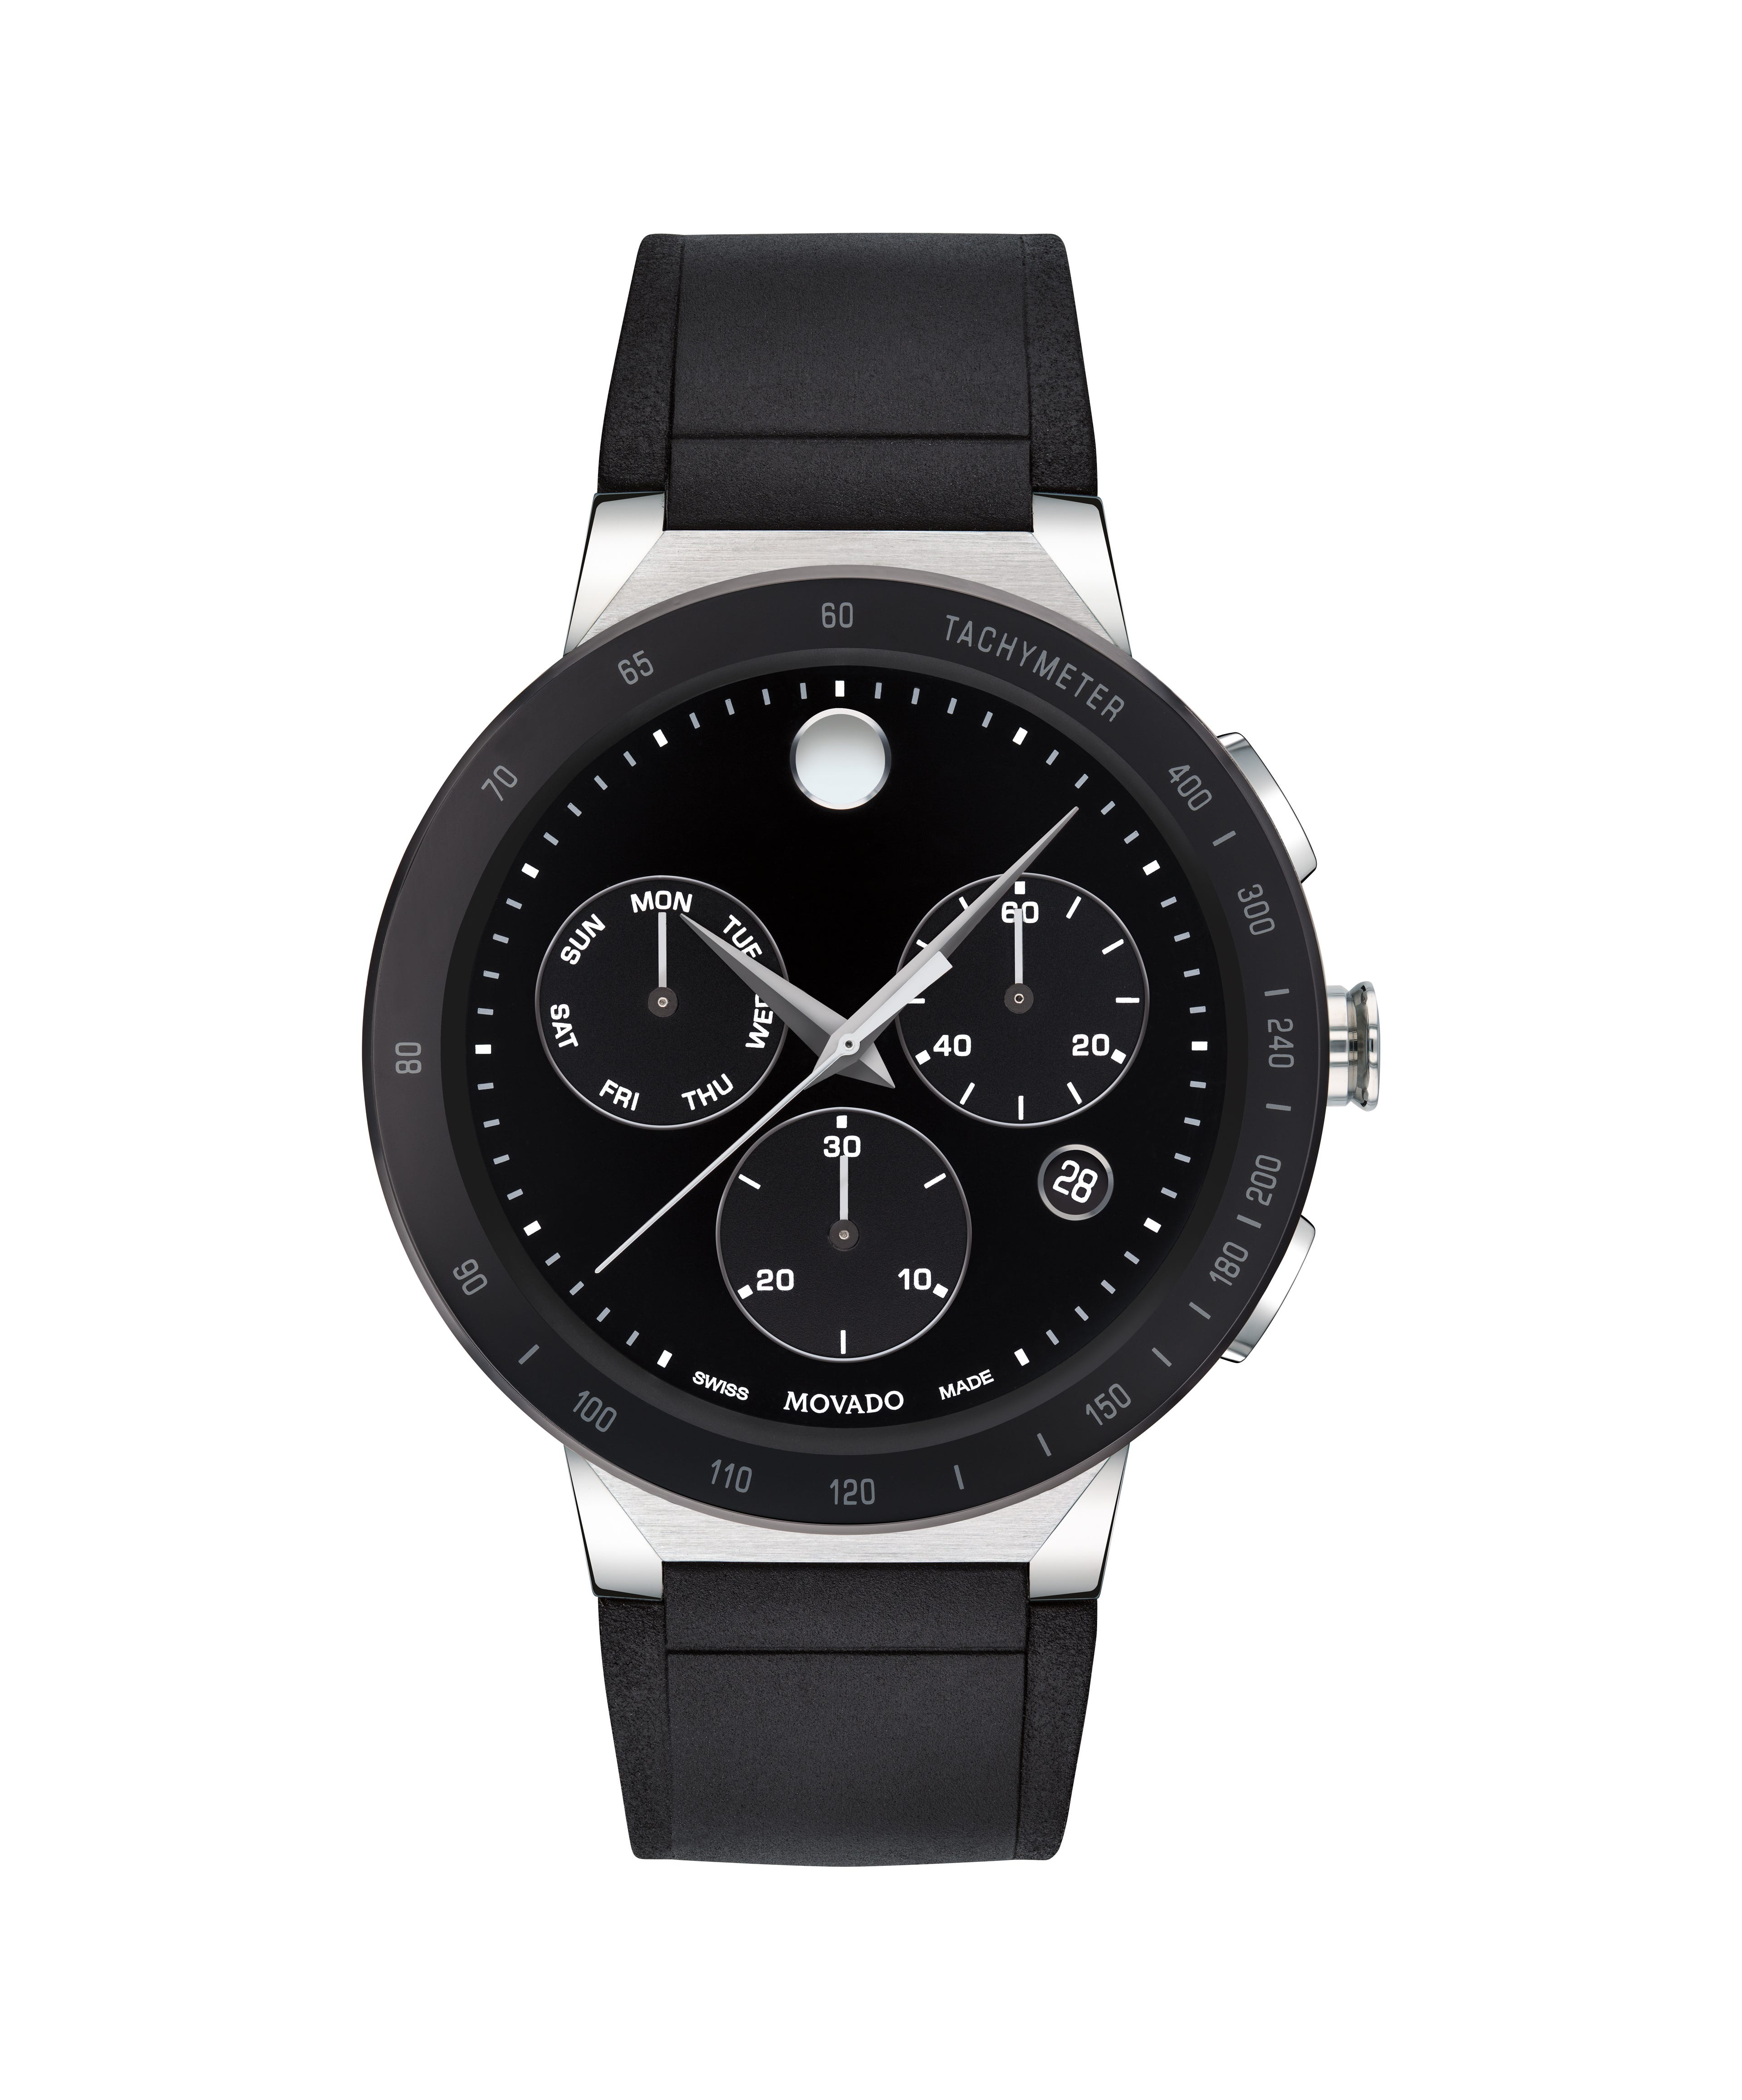 Movado Men's Sapphire Chronograph Stainless Steel Rubber Strap Watch 43mm 0607240